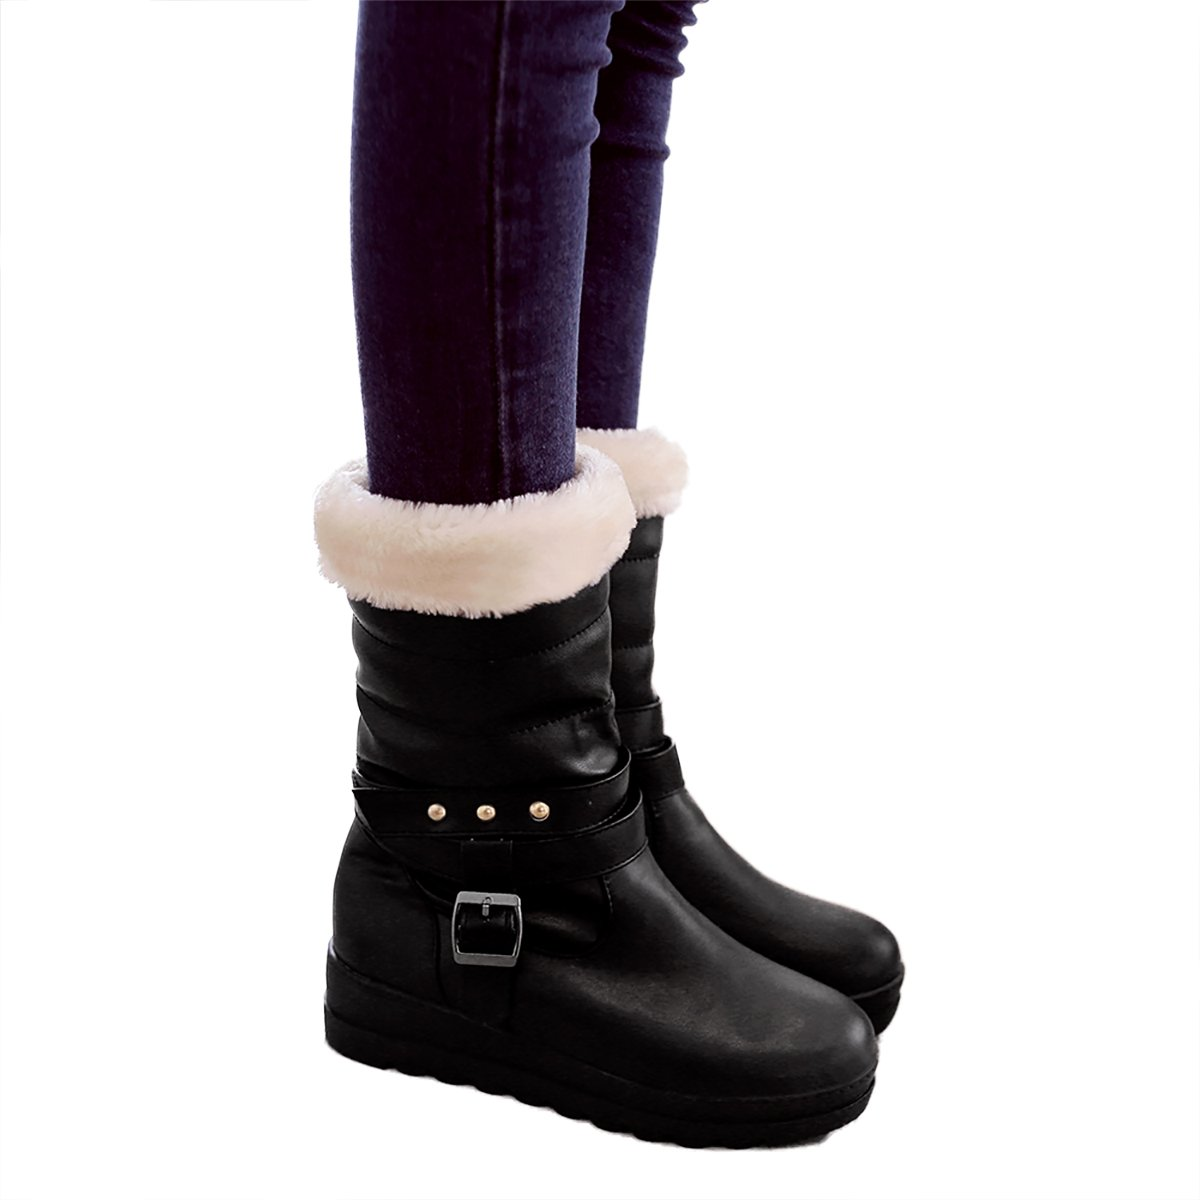 Inornever Waterproof Winter Boots Mid Calf Fleece Thick Fleece Calf Lined Warm Outdoor PU Low Heel Platform Snow Boots B077X8LD76 Snow Boots 55f685